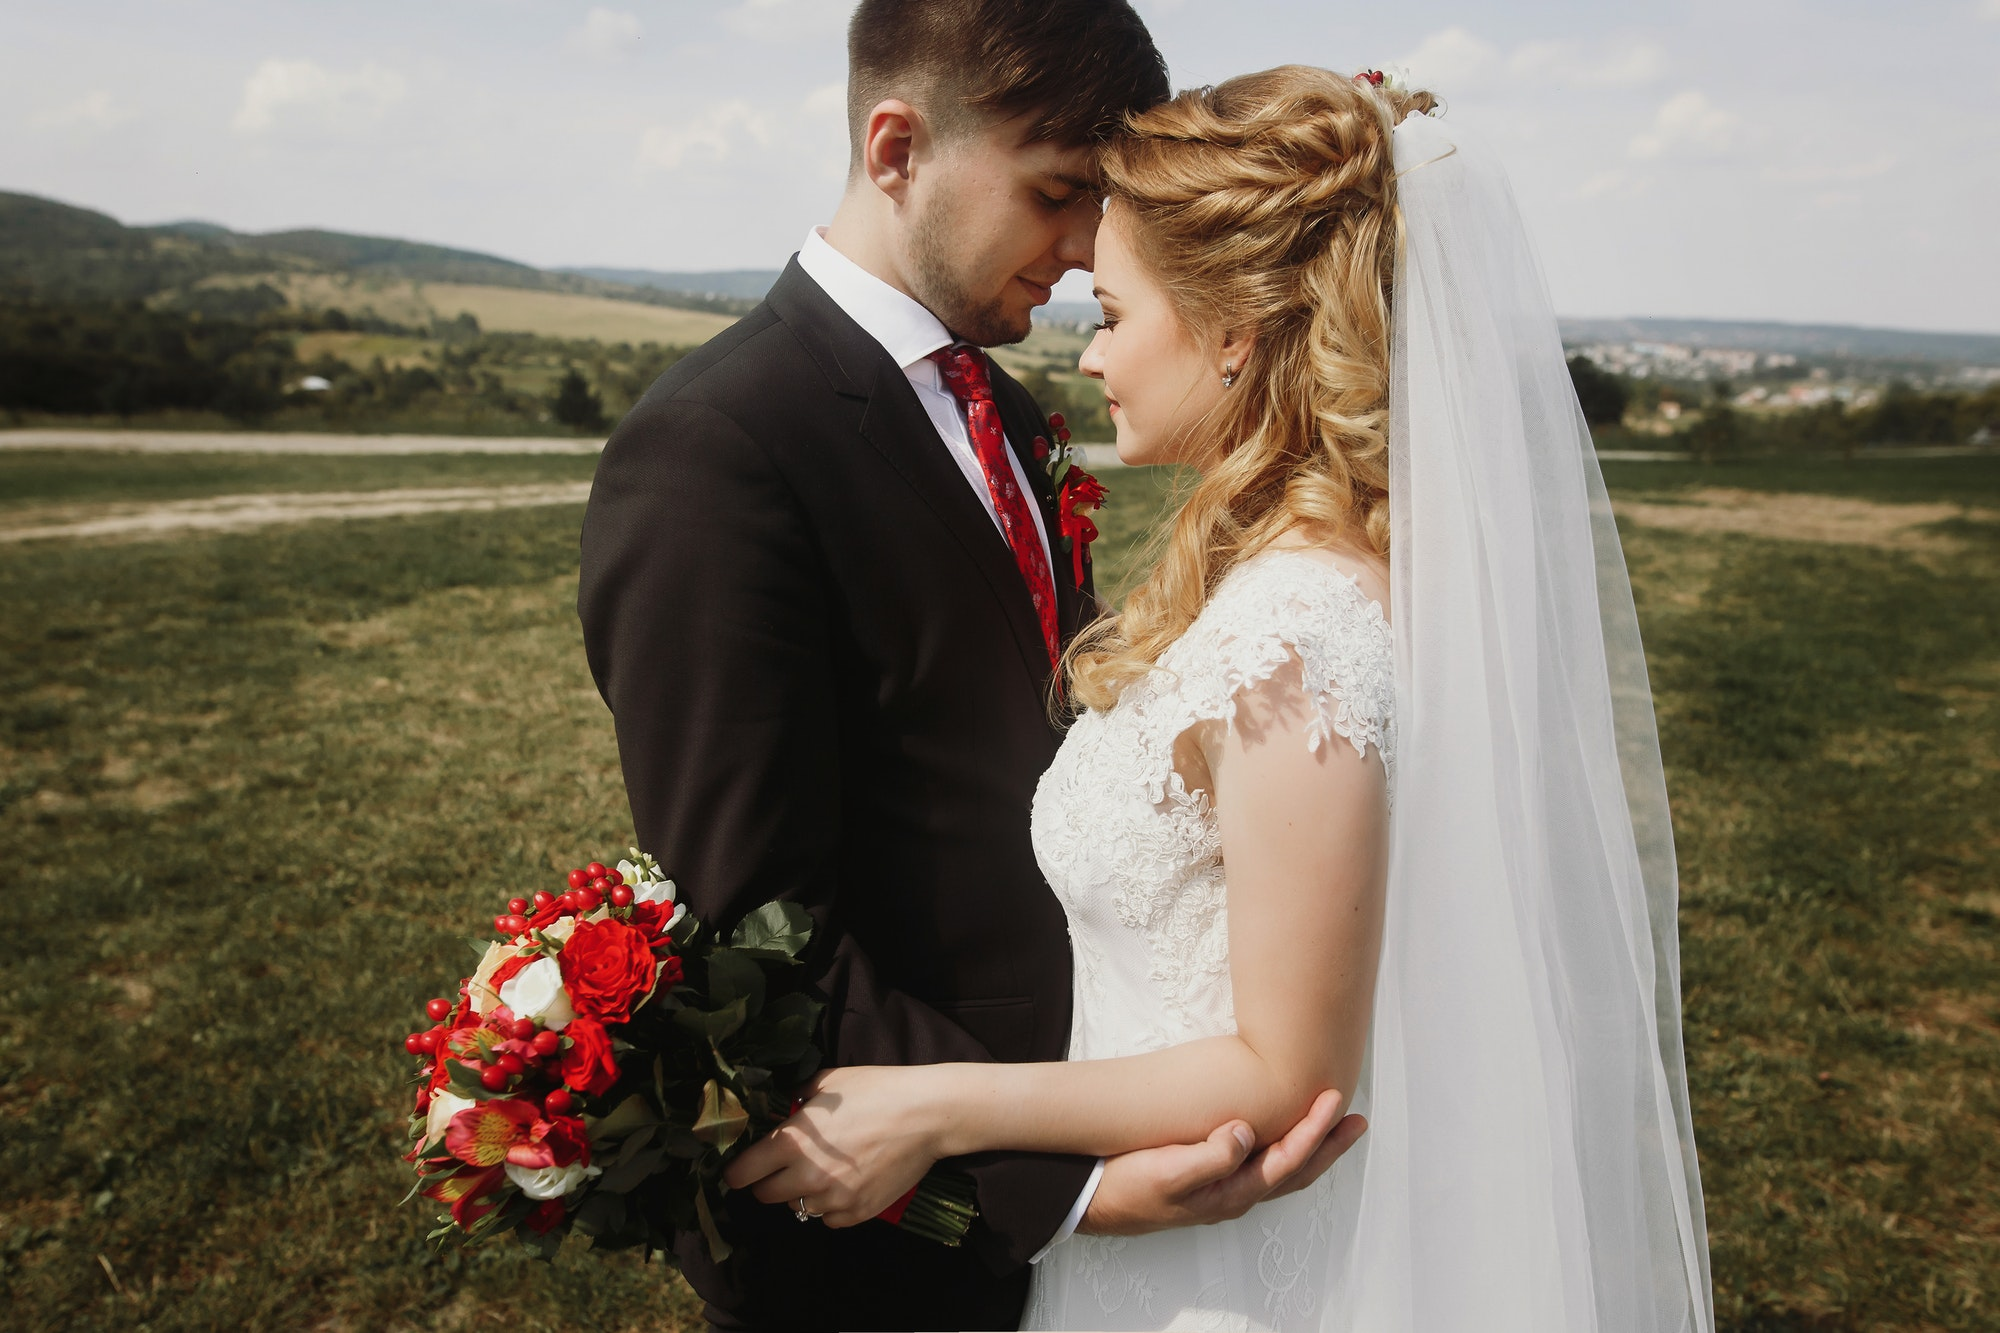 gorgeous bride and groom posing at field